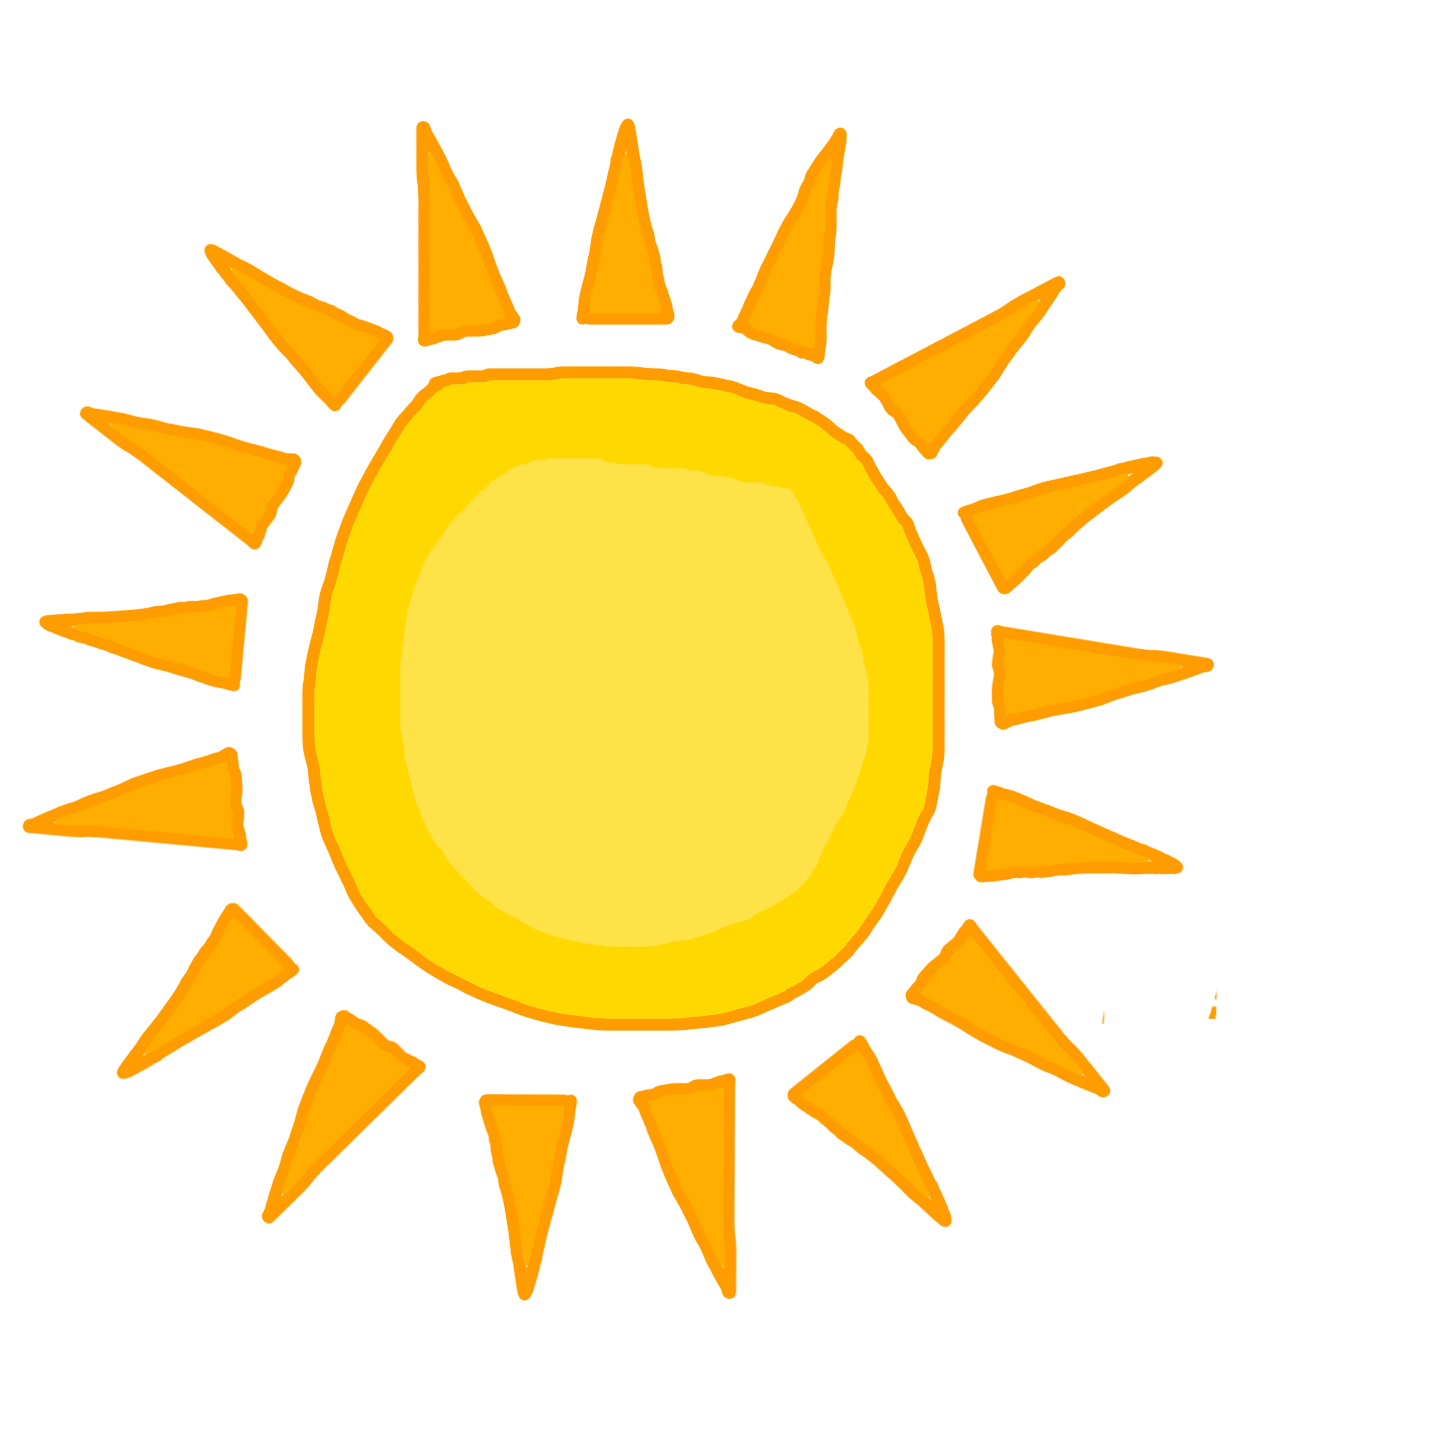 Sun i feel clipart free stock Sun Cartoon Png | Free download best Sun Cartoon Png on ... free stock